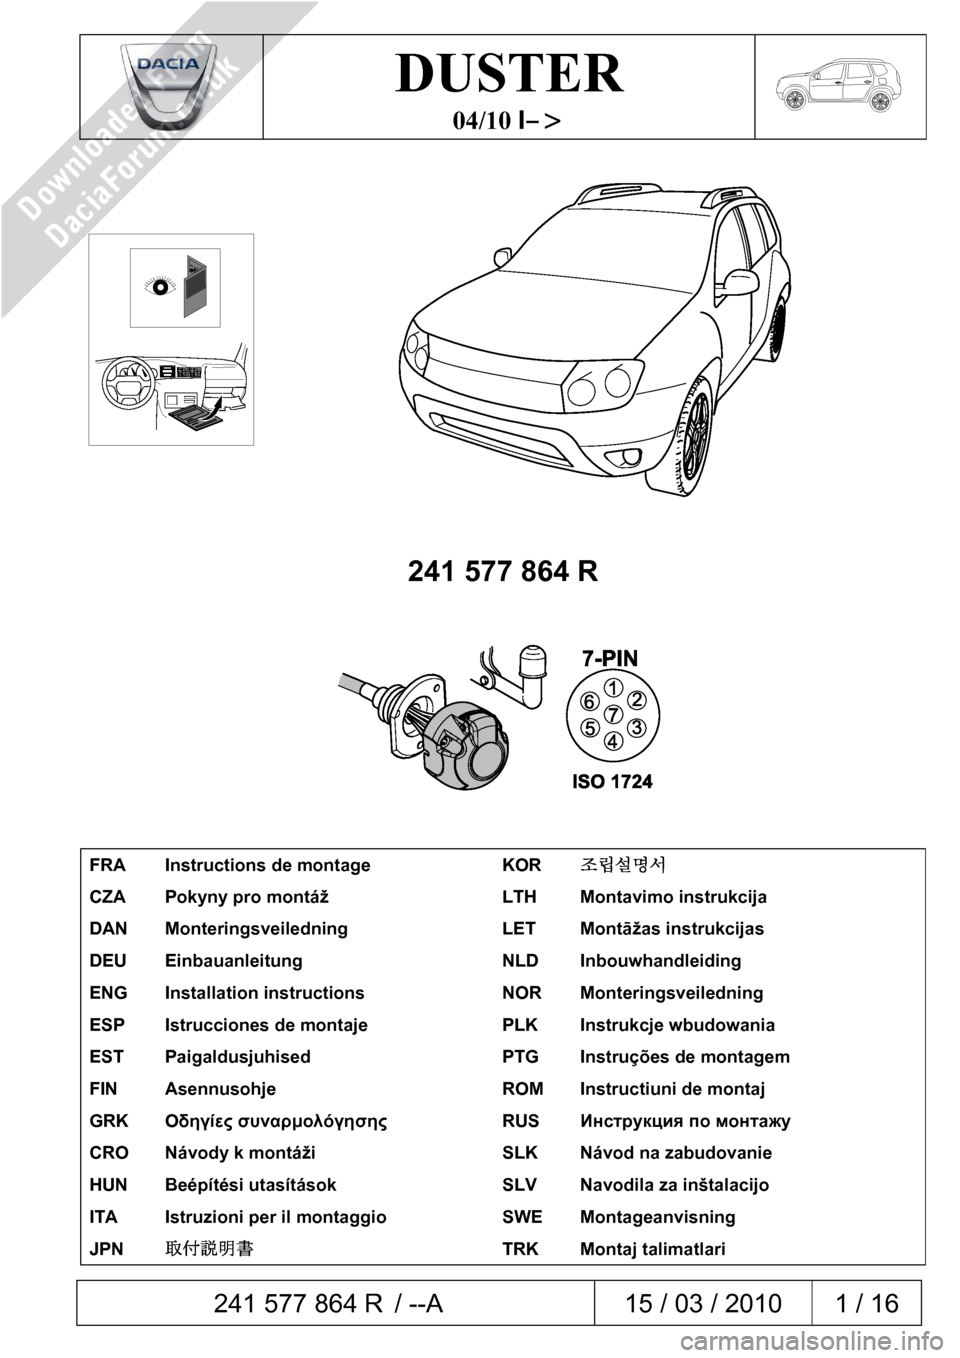 DACIA DUSTER 2010 1.G 7 Pin Towbar Fitting Guide Workshop Manual  241 577 864 R / --A  15 / 03 / 2010  1 / 16     DUSTER  04/10 I–>          241 577 864 R        FRA  Instructions de montage  KOR 조립설명서  CZA  Pokyny pro montáž  LTH  Montavimo instrukci